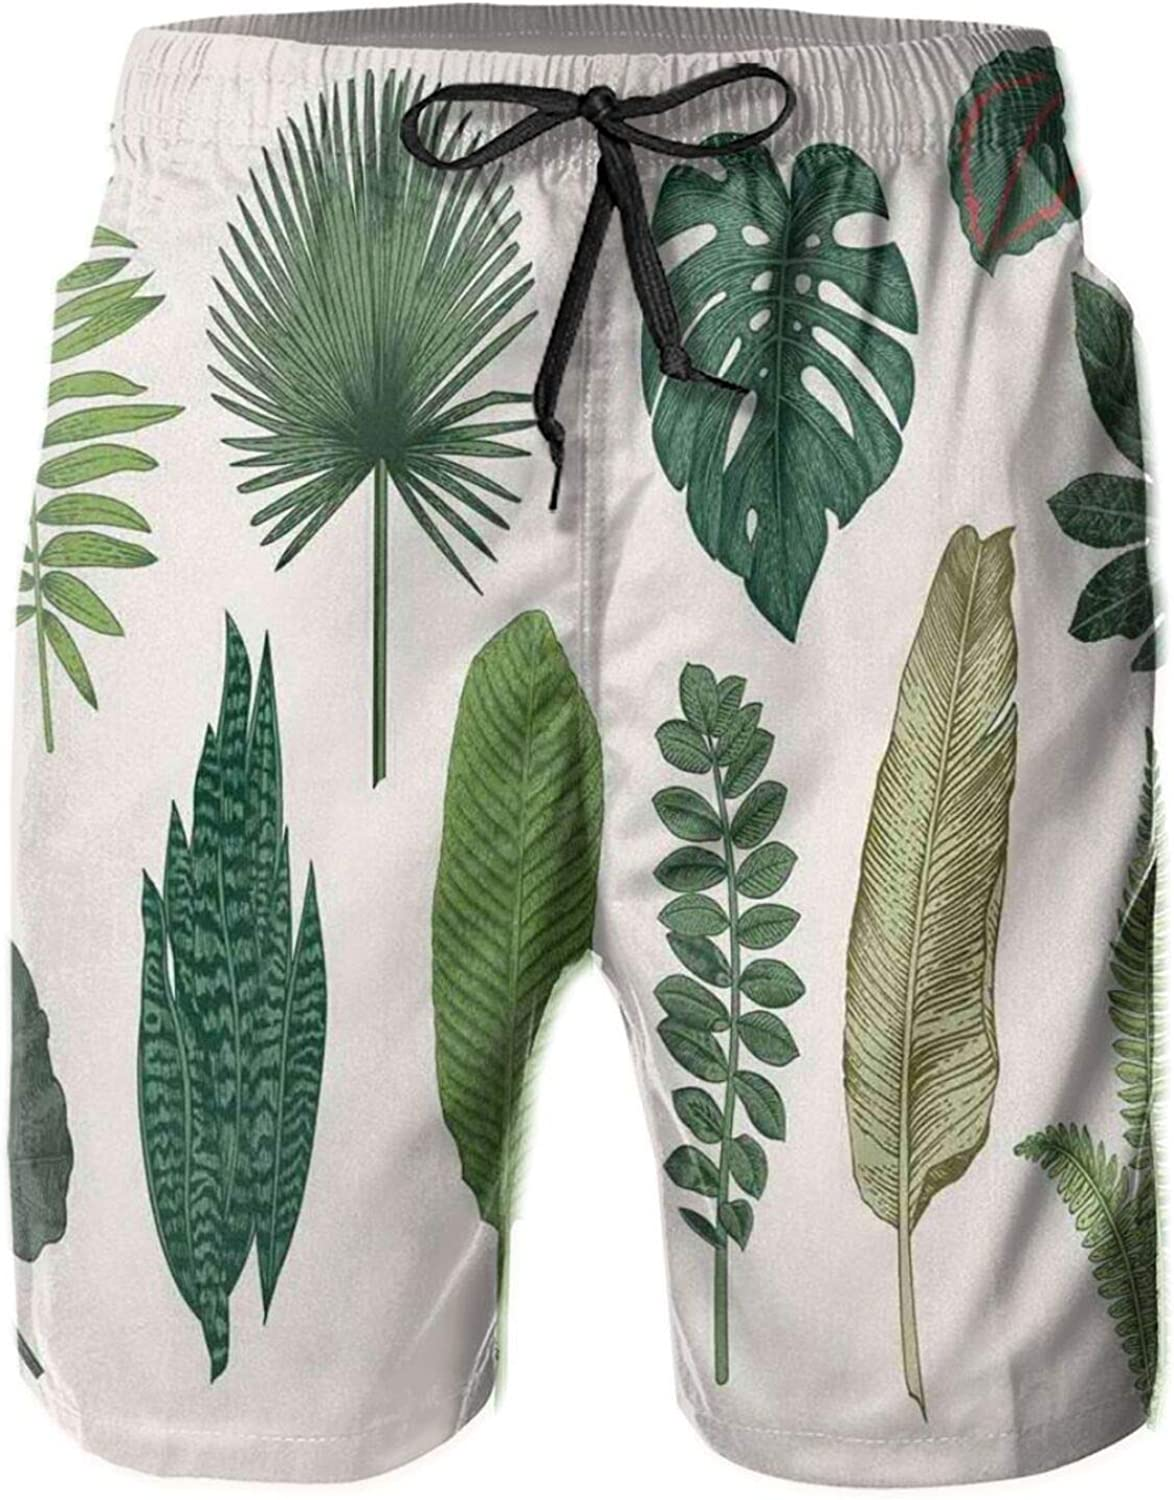 Vintage Botanical Composition of Different Kinds of Tree Leaves from Exotic Nature Mens Swim Shorts Casual Workout Short Pants Drawstring Beach Shorts,XXL